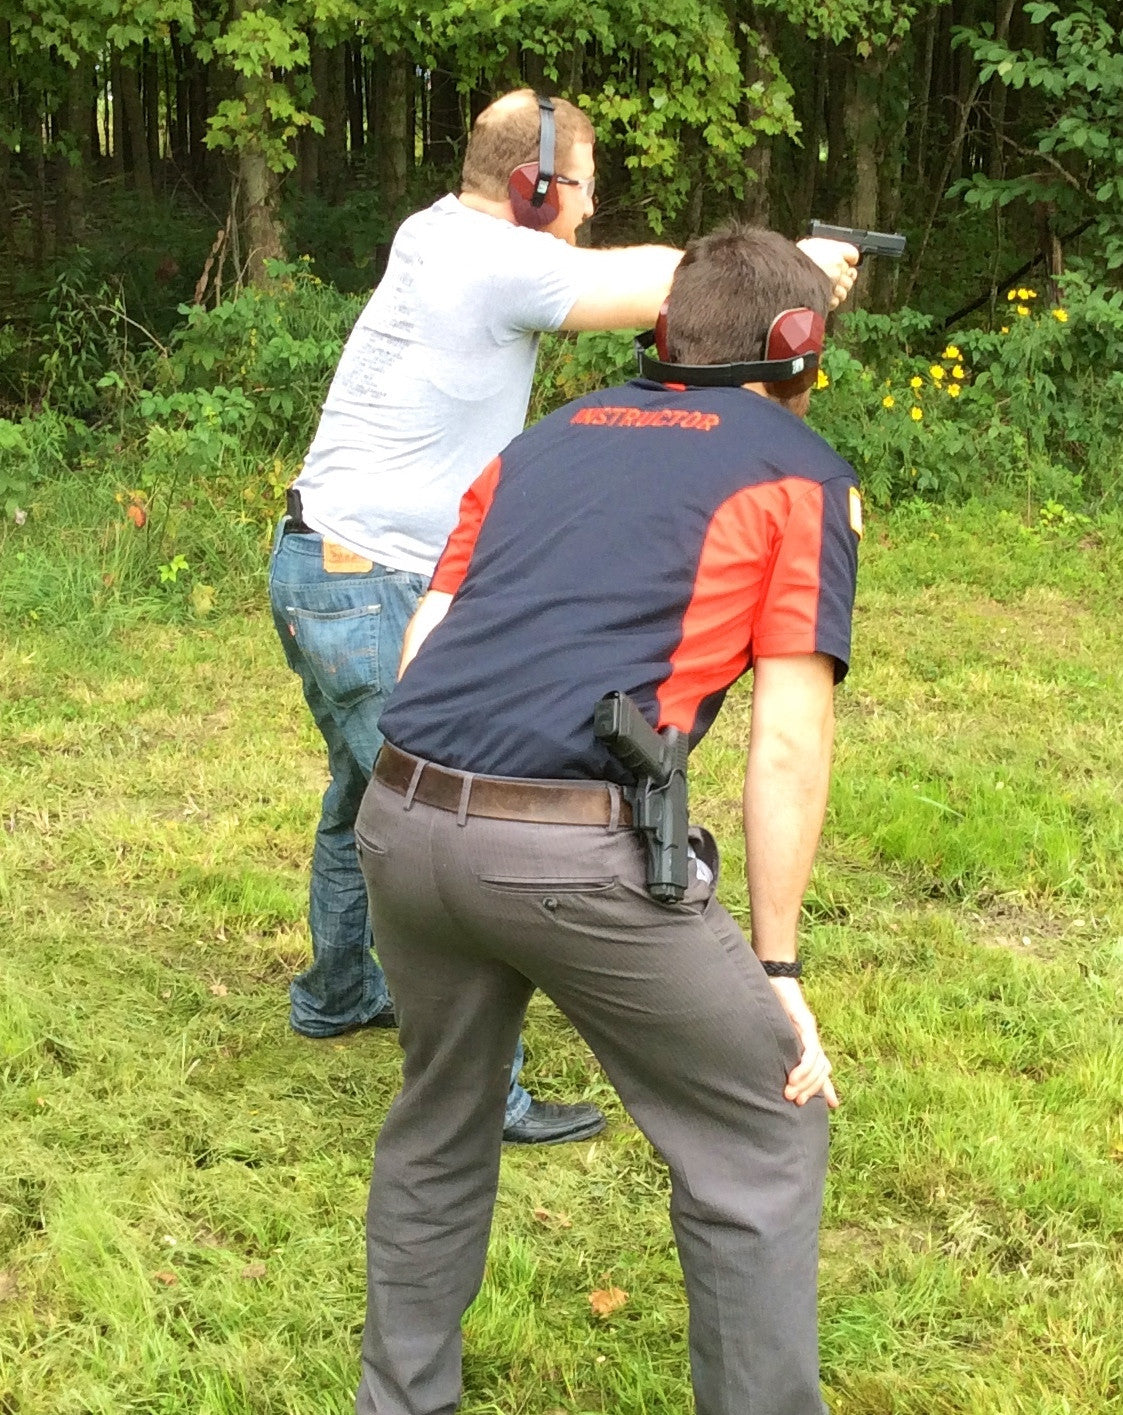 Traumatic weapon of self defense